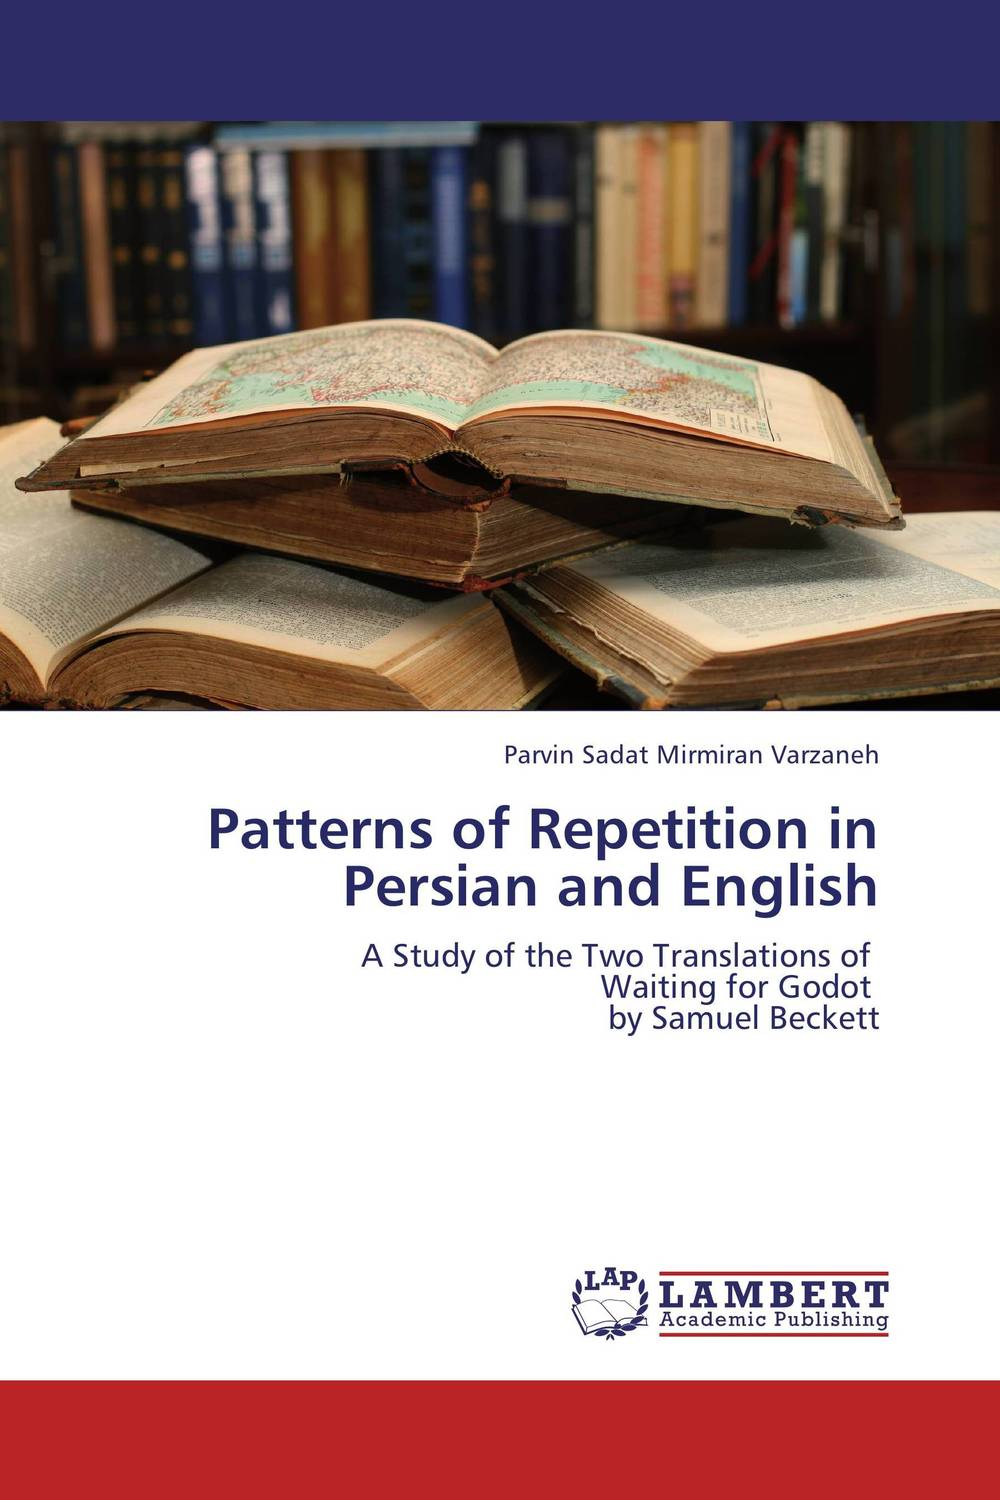 Patterns of Repetition in Persian and English татьяна олива моралес the comparative typology of spanish and english texts story and anecdotes for reading translating and retelling in spanish and english adapted by © linguistic rescue method level a1 a2